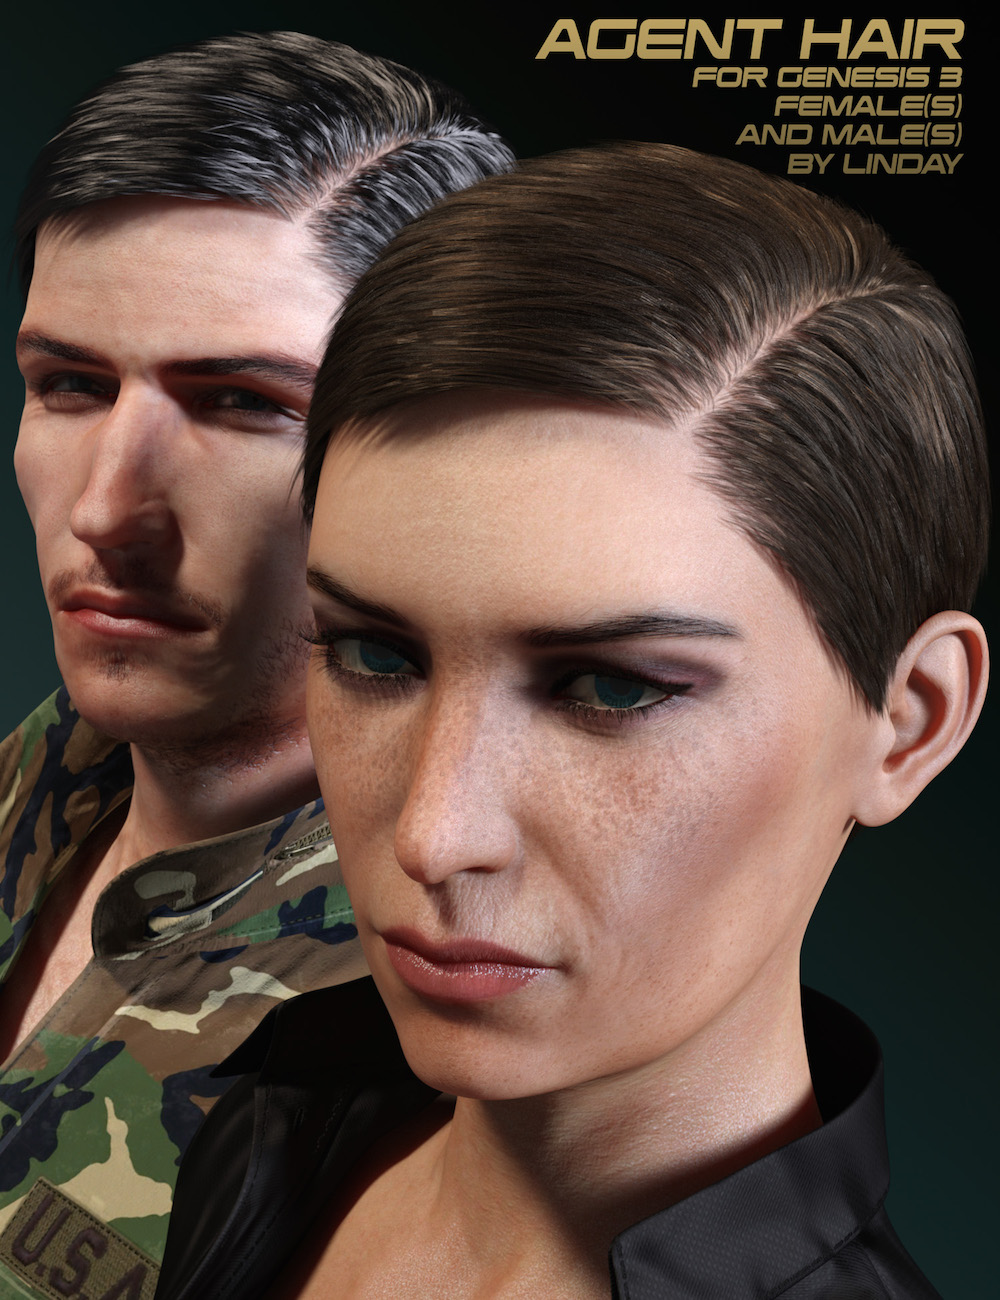 Agent Hair for Genesis 3 Female(s) and Male(s) by: Linday, 3D Models by Daz 3D